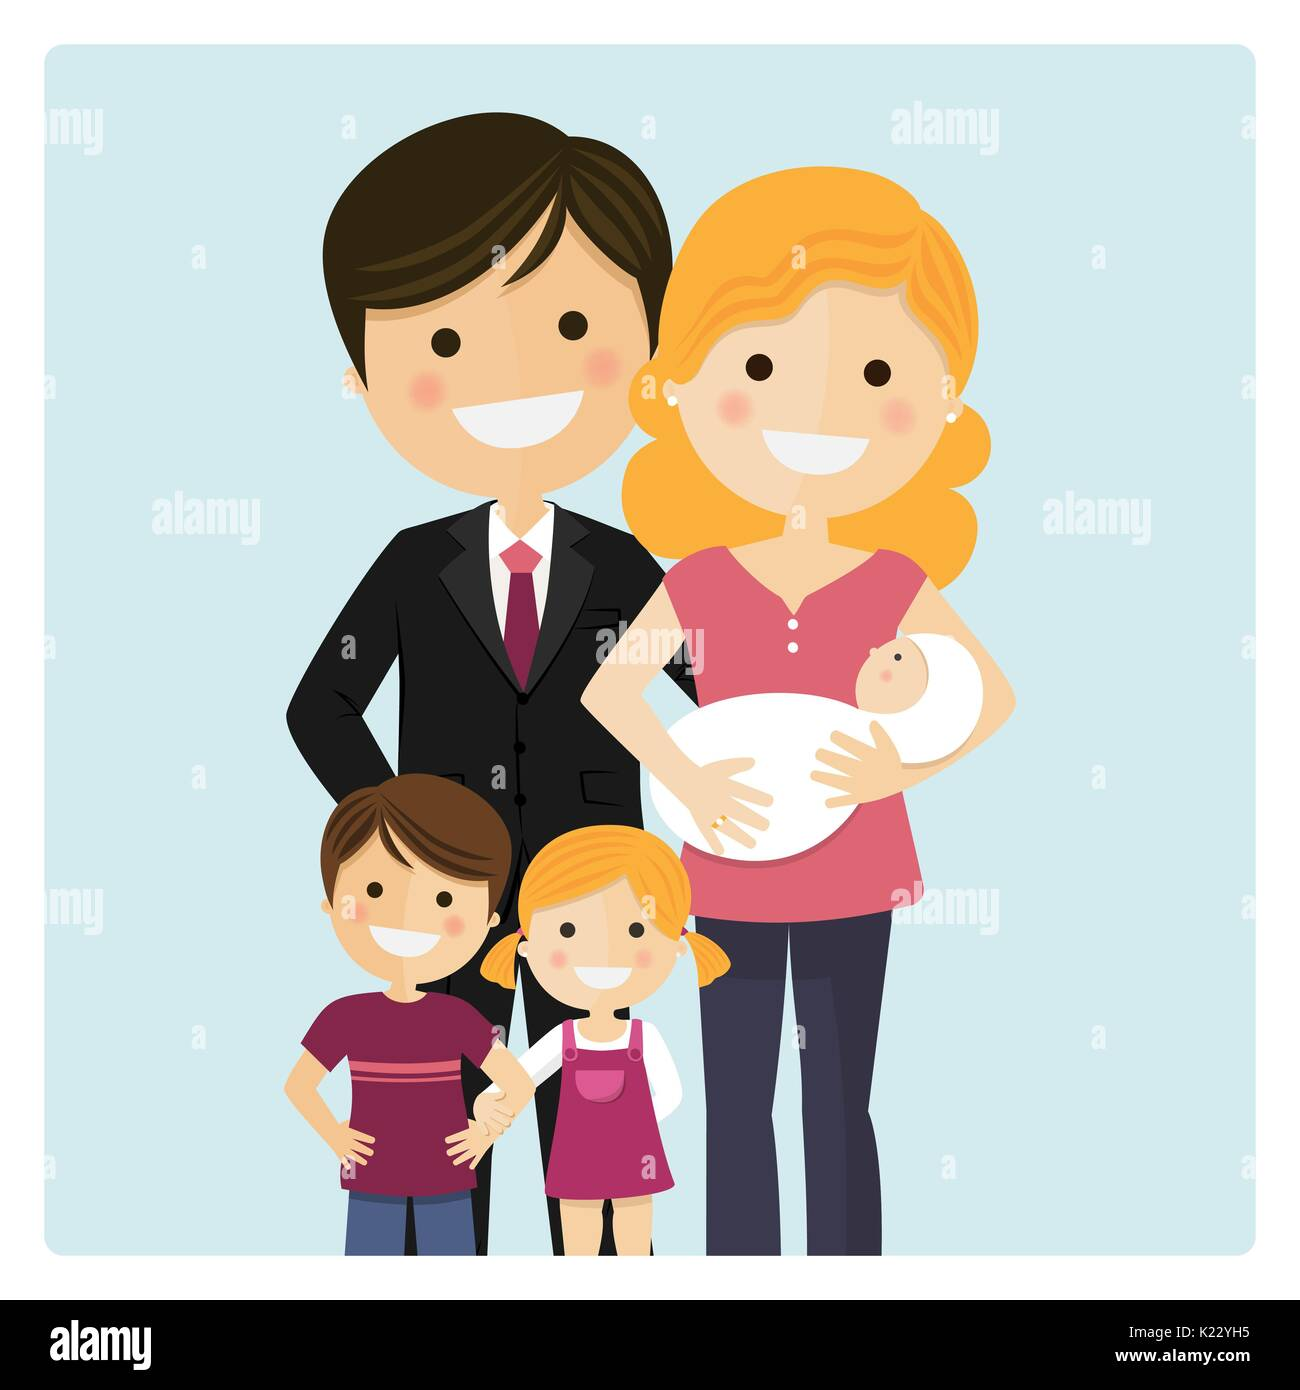 Family with two children and a newborn baby on blue background. Vector illustration - Stock Vector